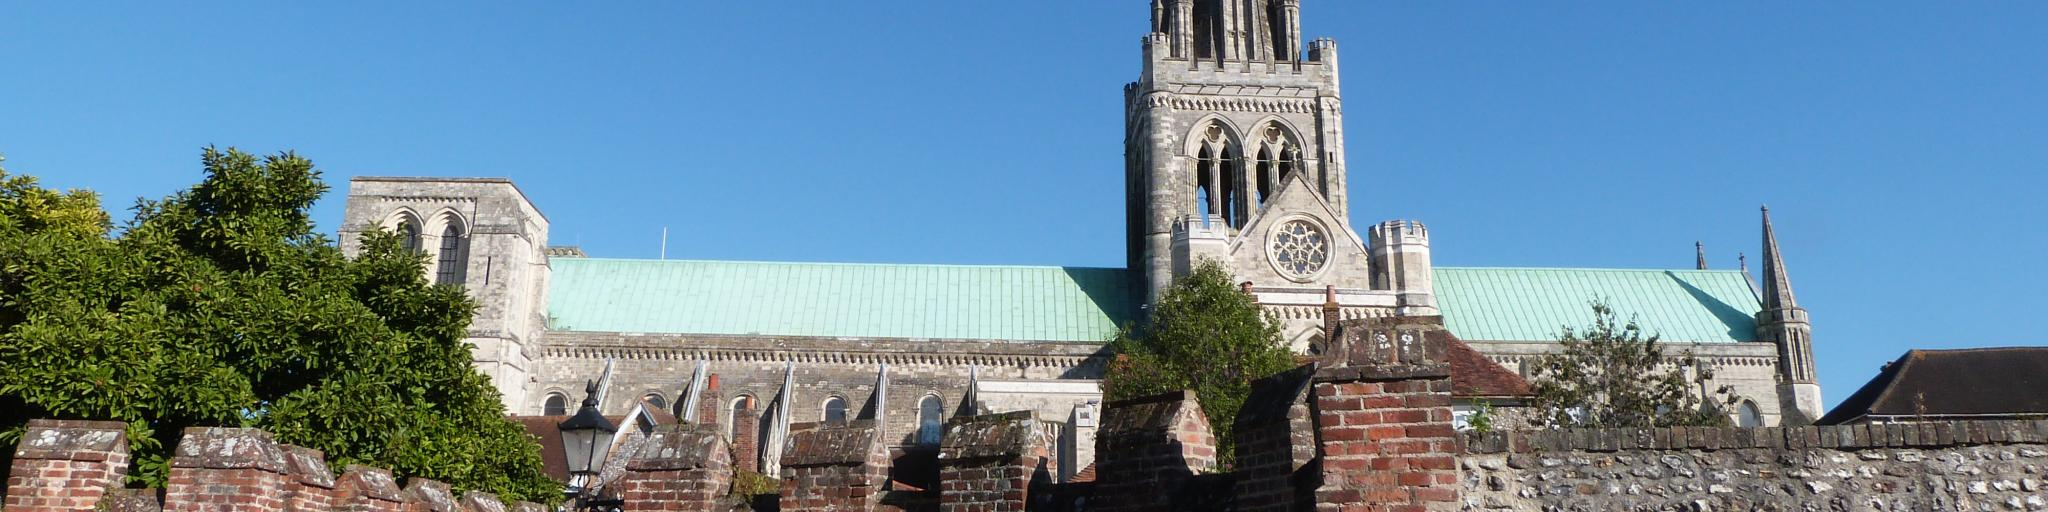 The Chichester Cathedral's Gothic steeple is the tallest point in the city